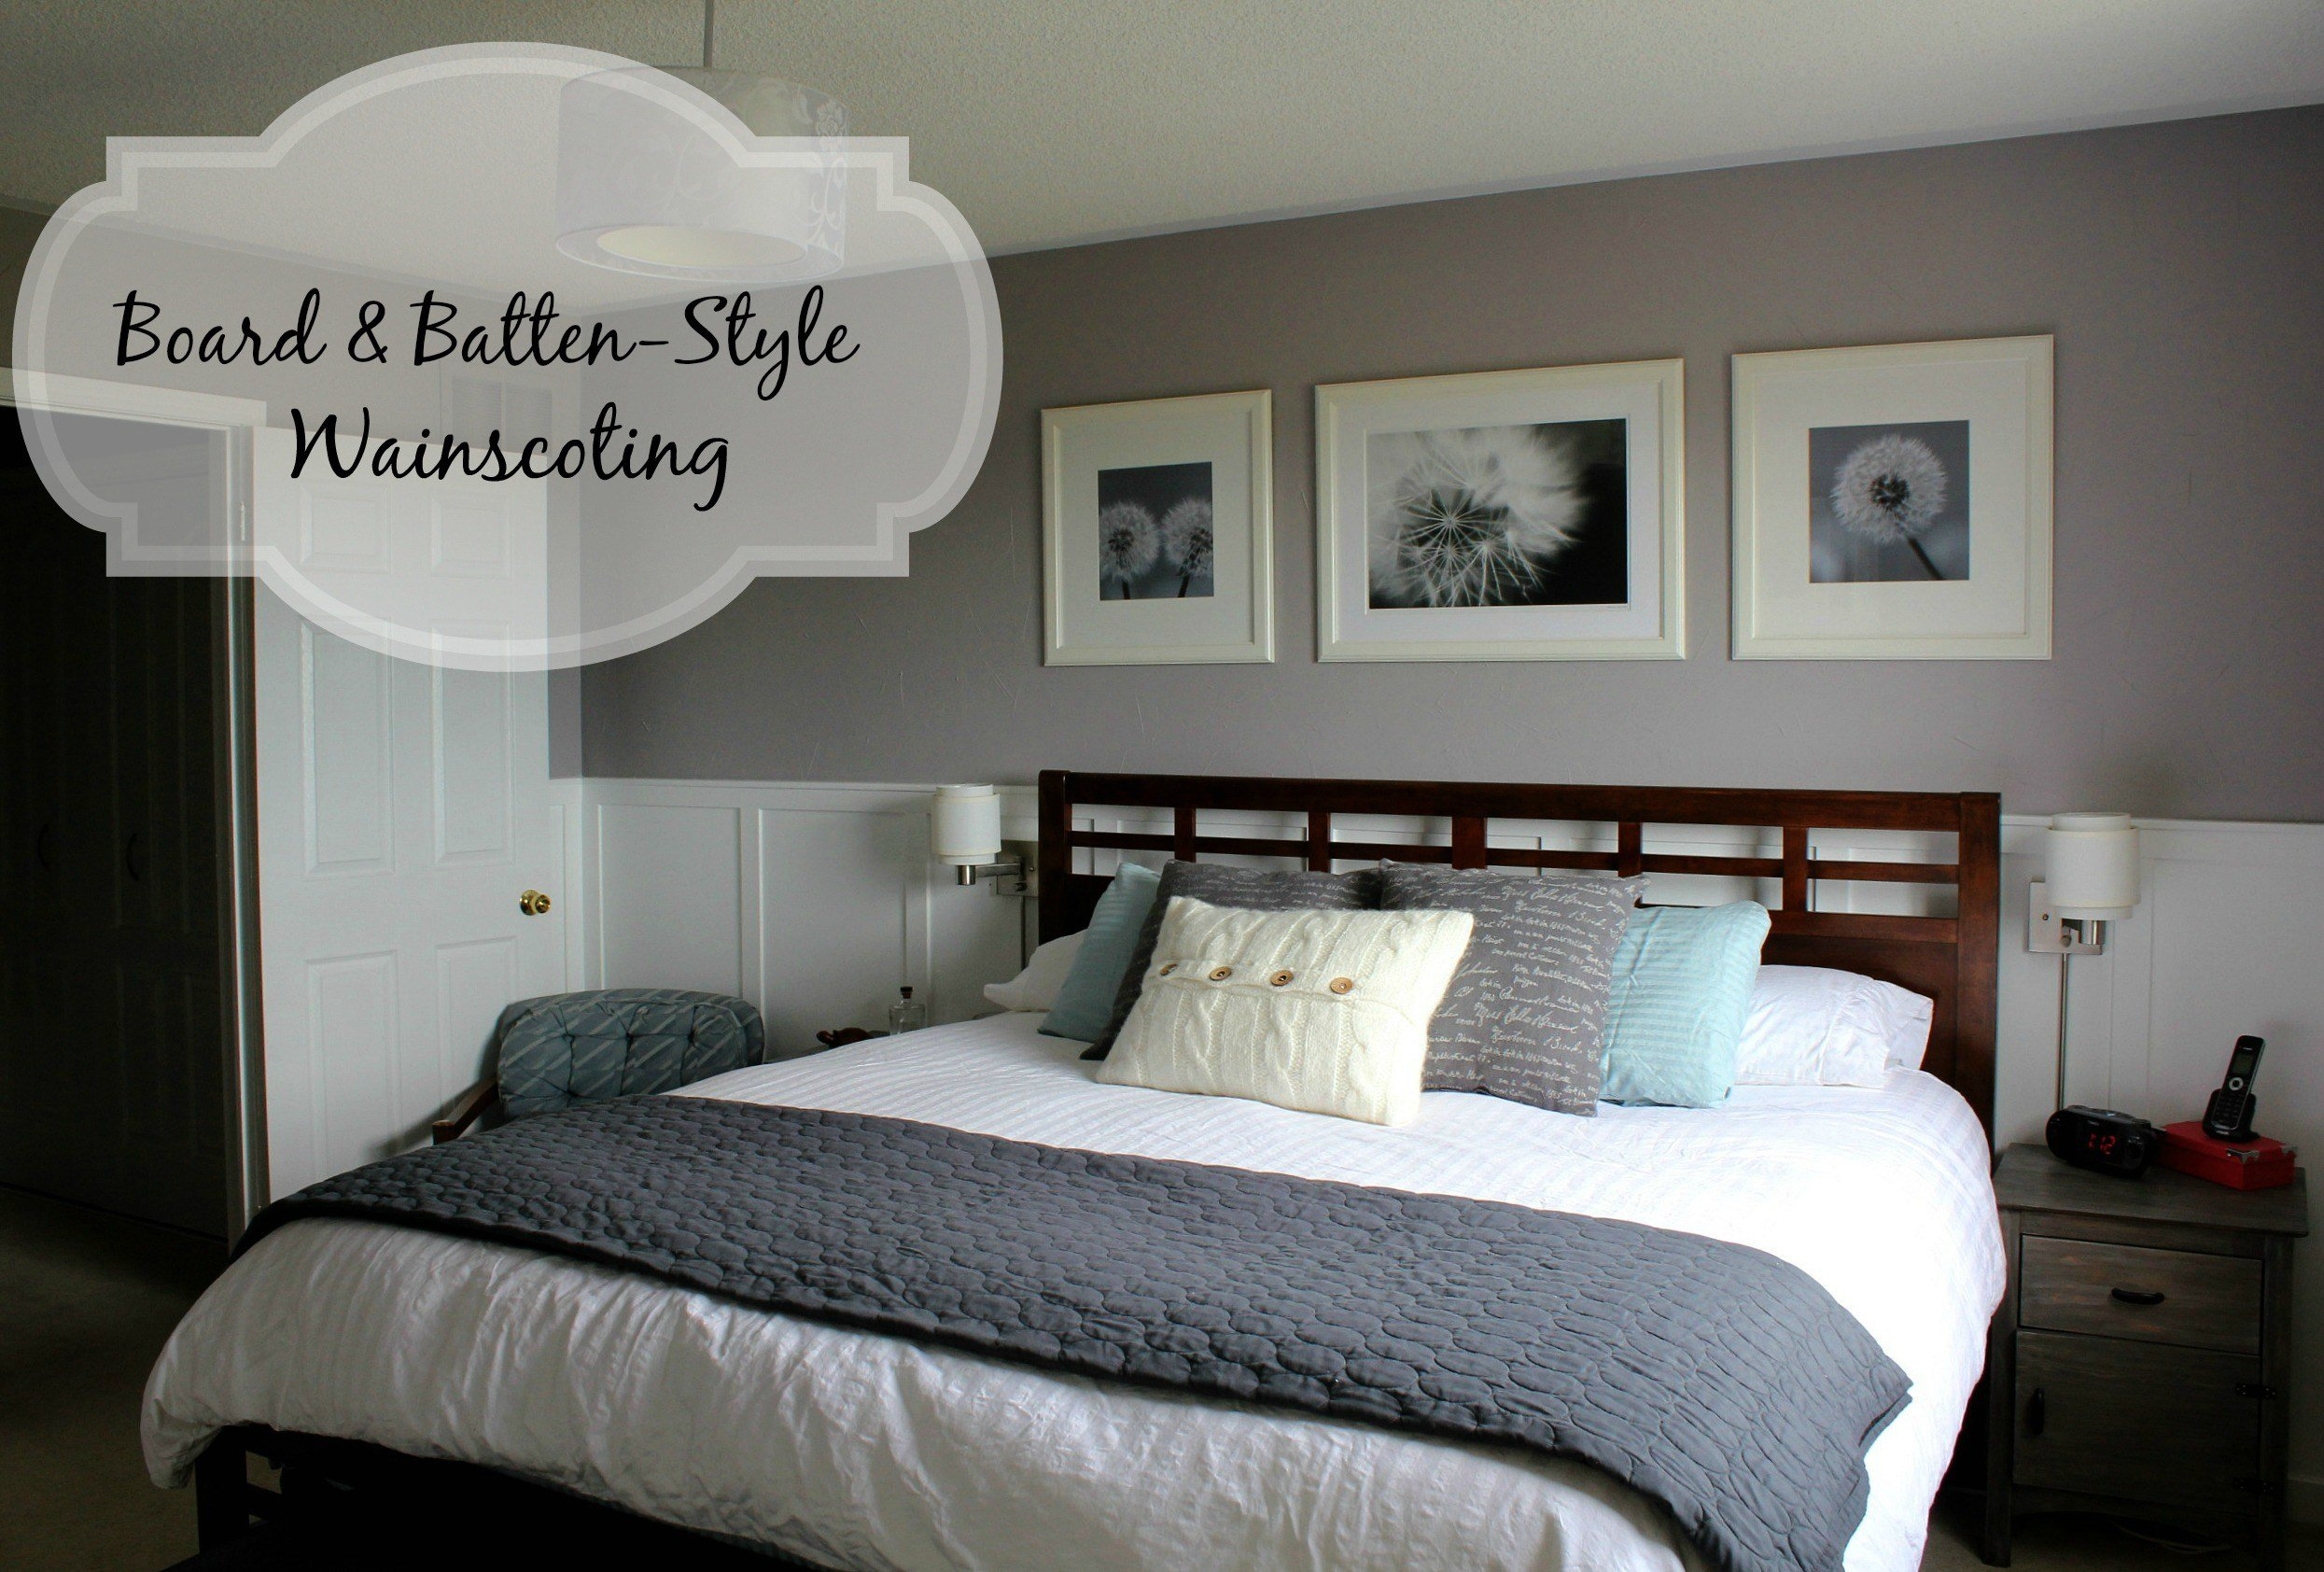 Best Turtles And Tails Upgrade Your Bedroom With Board And Batten Style Wainscoting With Pictures